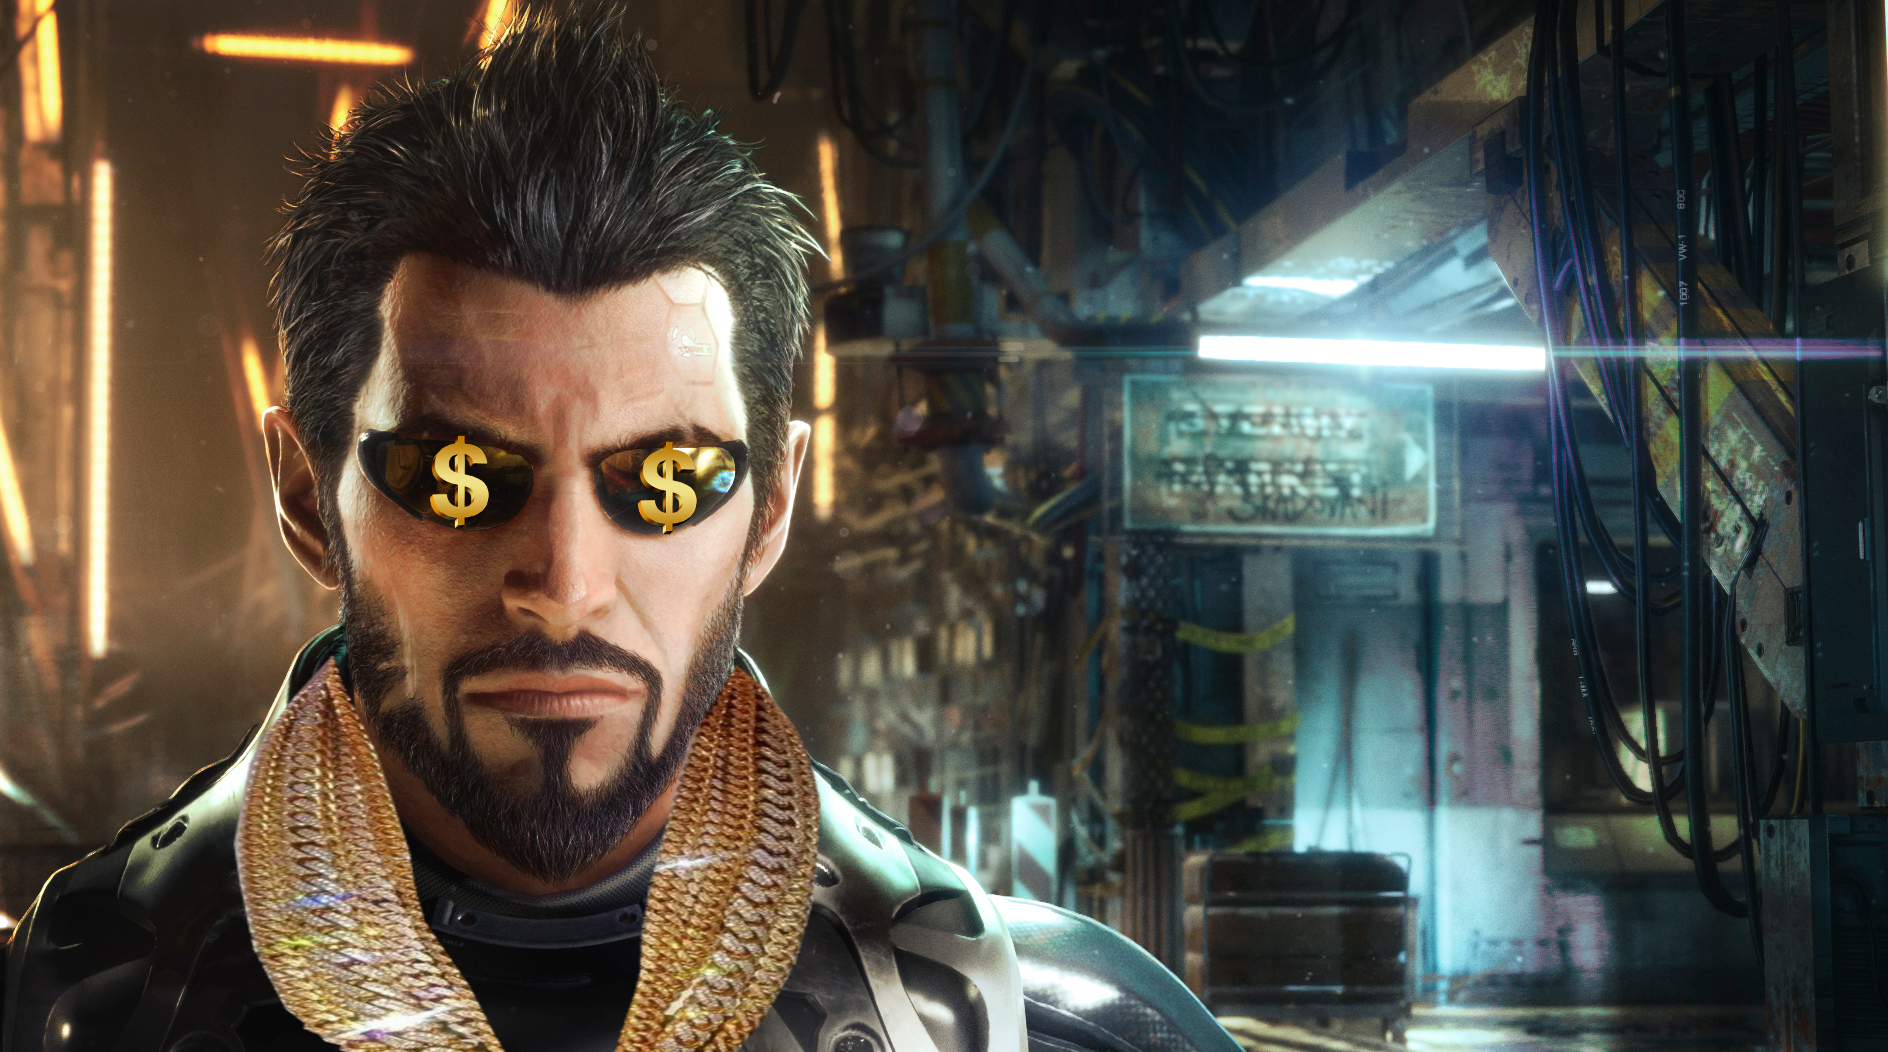 Let's discount Deus Ex: Mankind Divided, Tales of Zestiria, and more this weekend screenshot